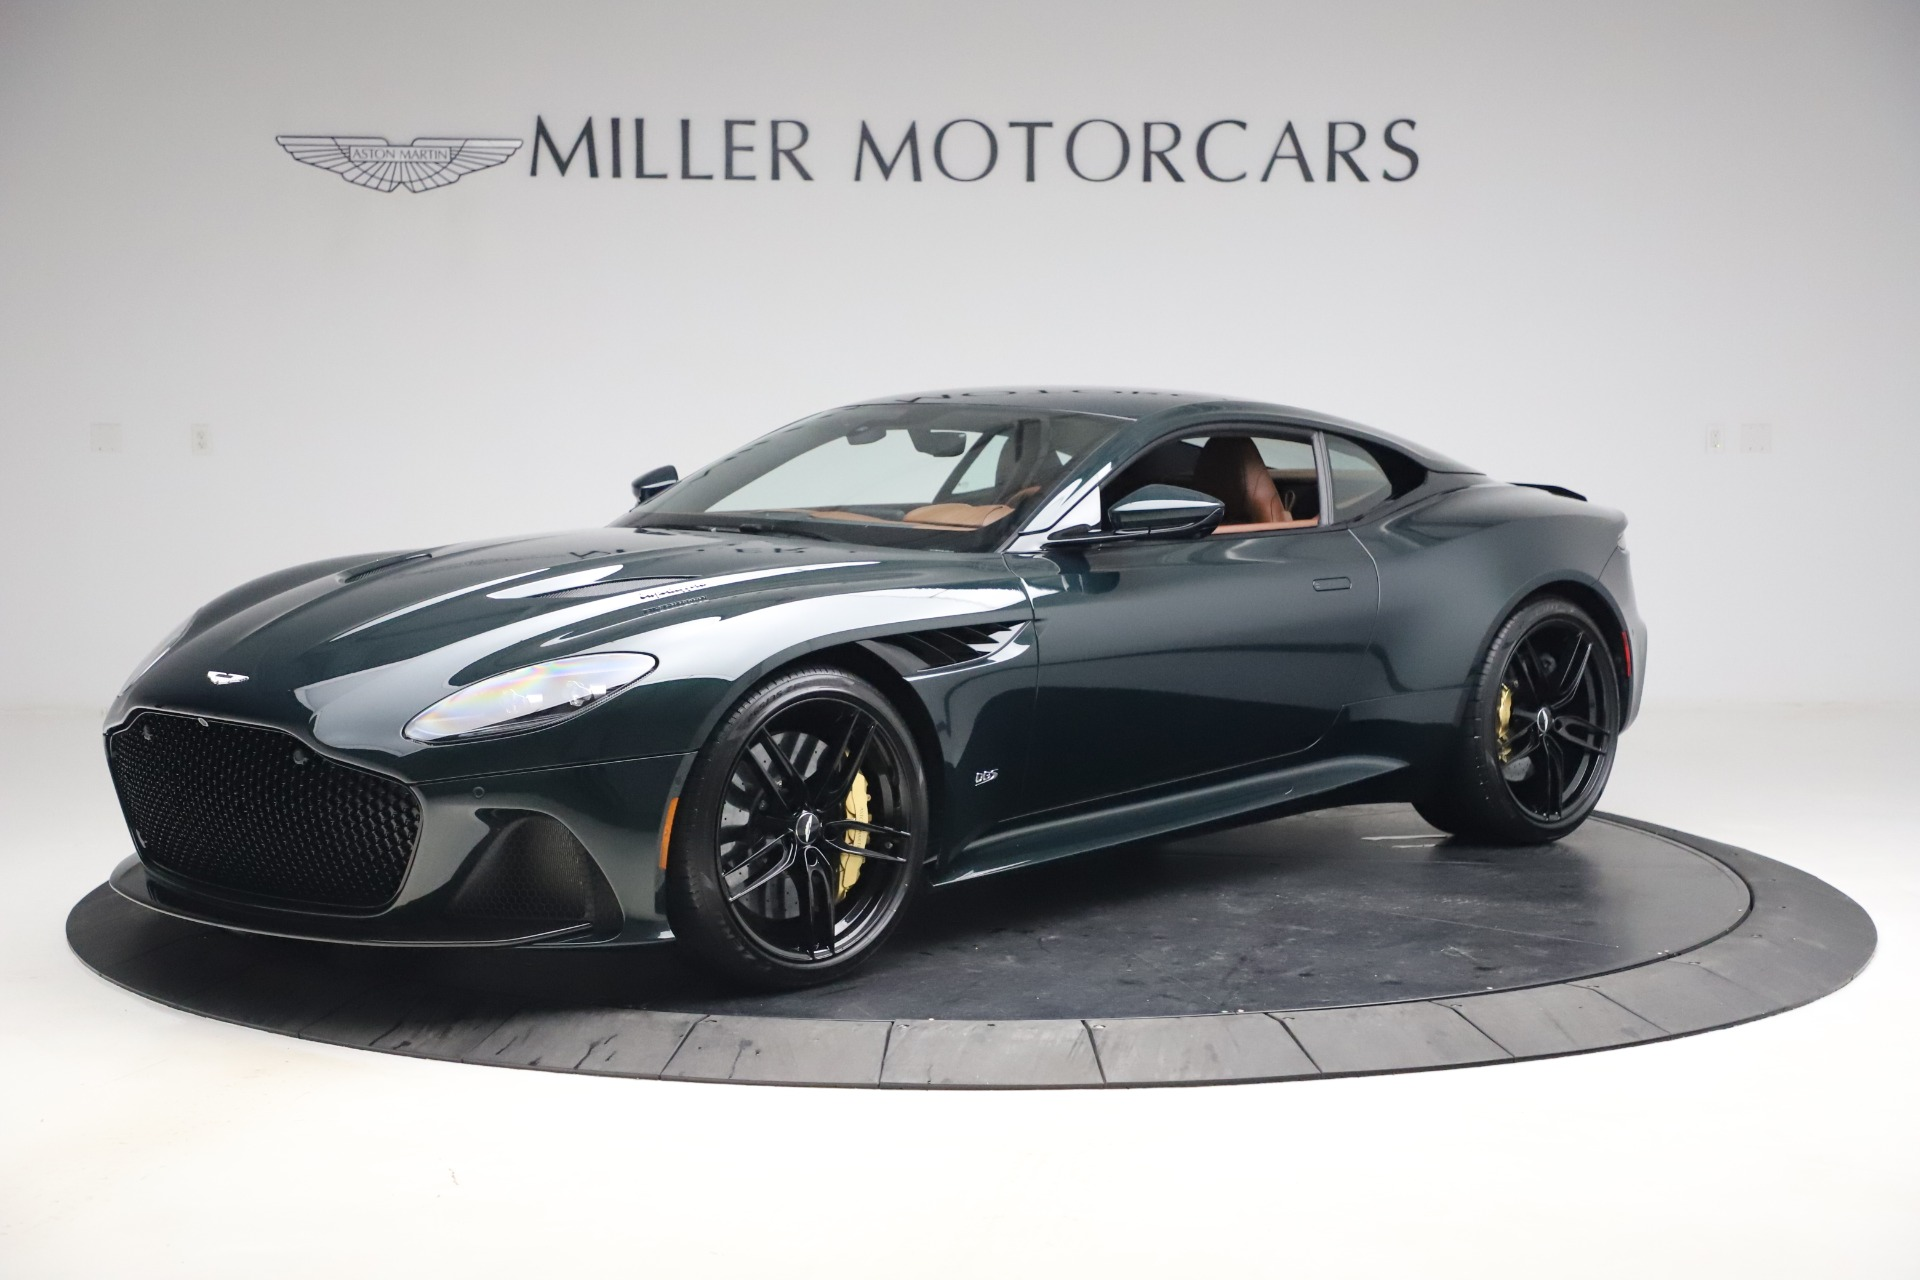 Used 2020 Aston Martin DBS Superleggera for sale Sold at Bentley Greenwich in Greenwich CT 06830 1